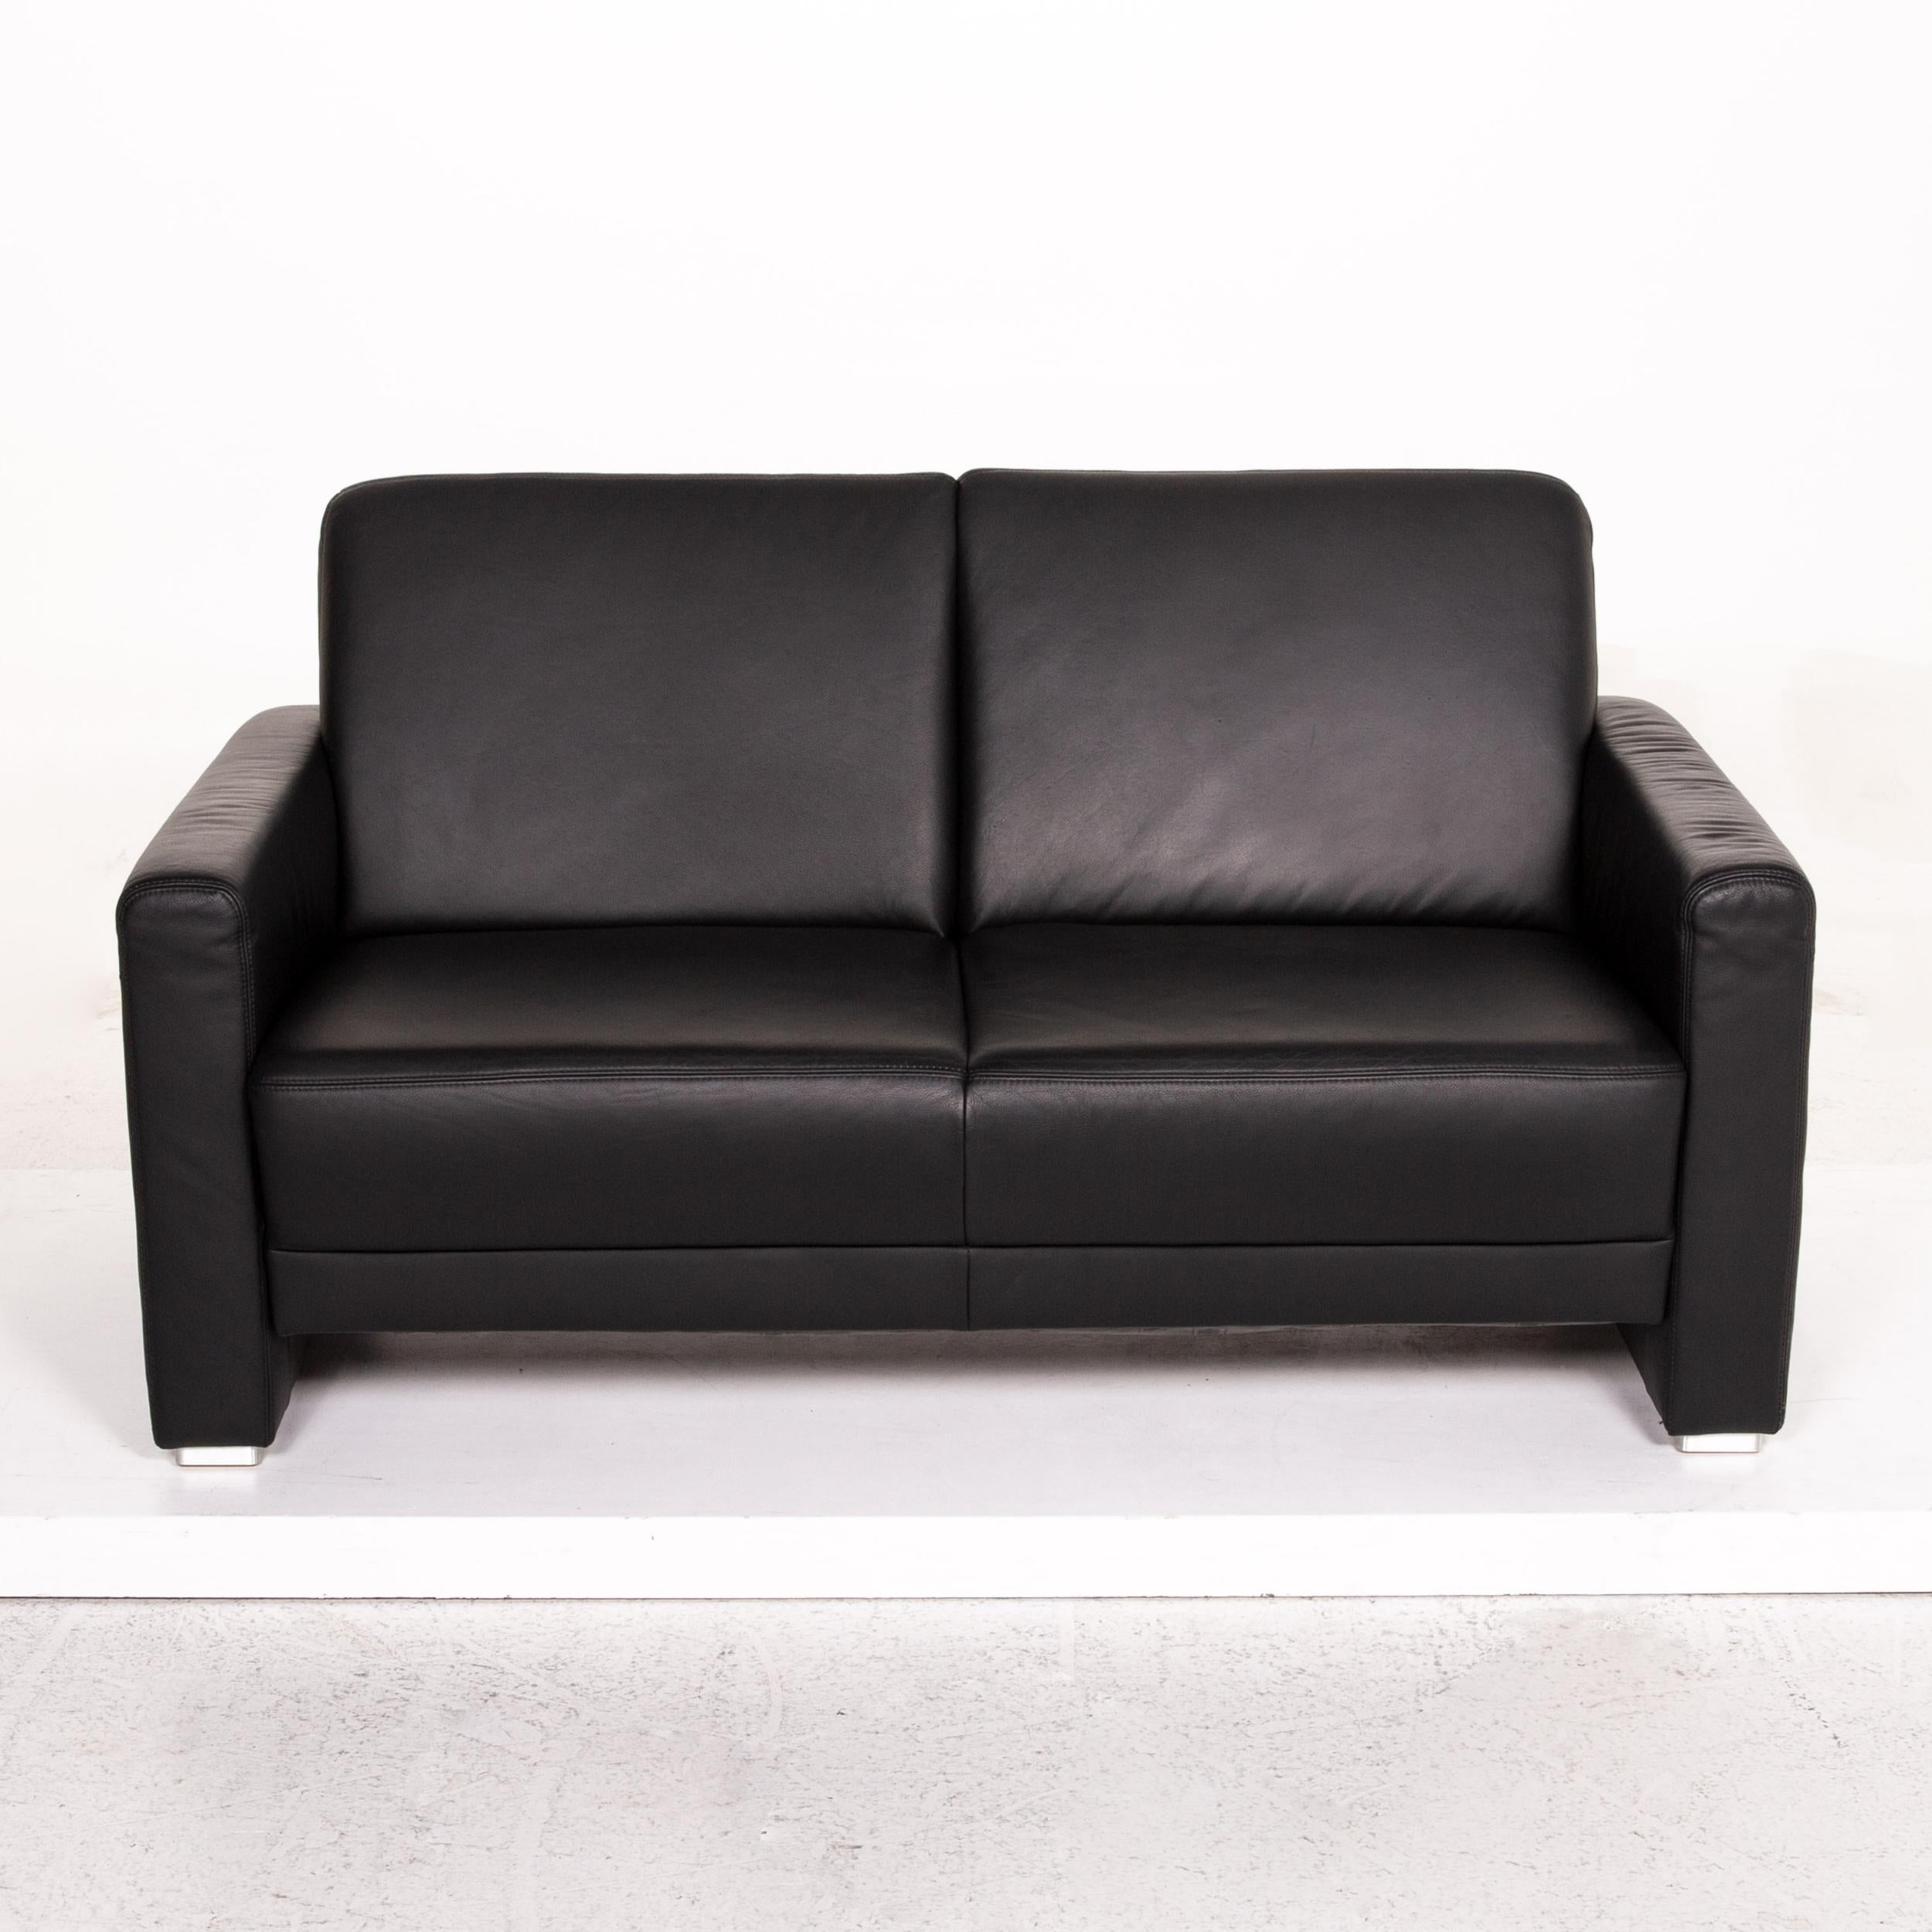 Musterring Ledersofa Sample Ring Leather Sofa Black Two-seat Couch For Sale At 1stdibs